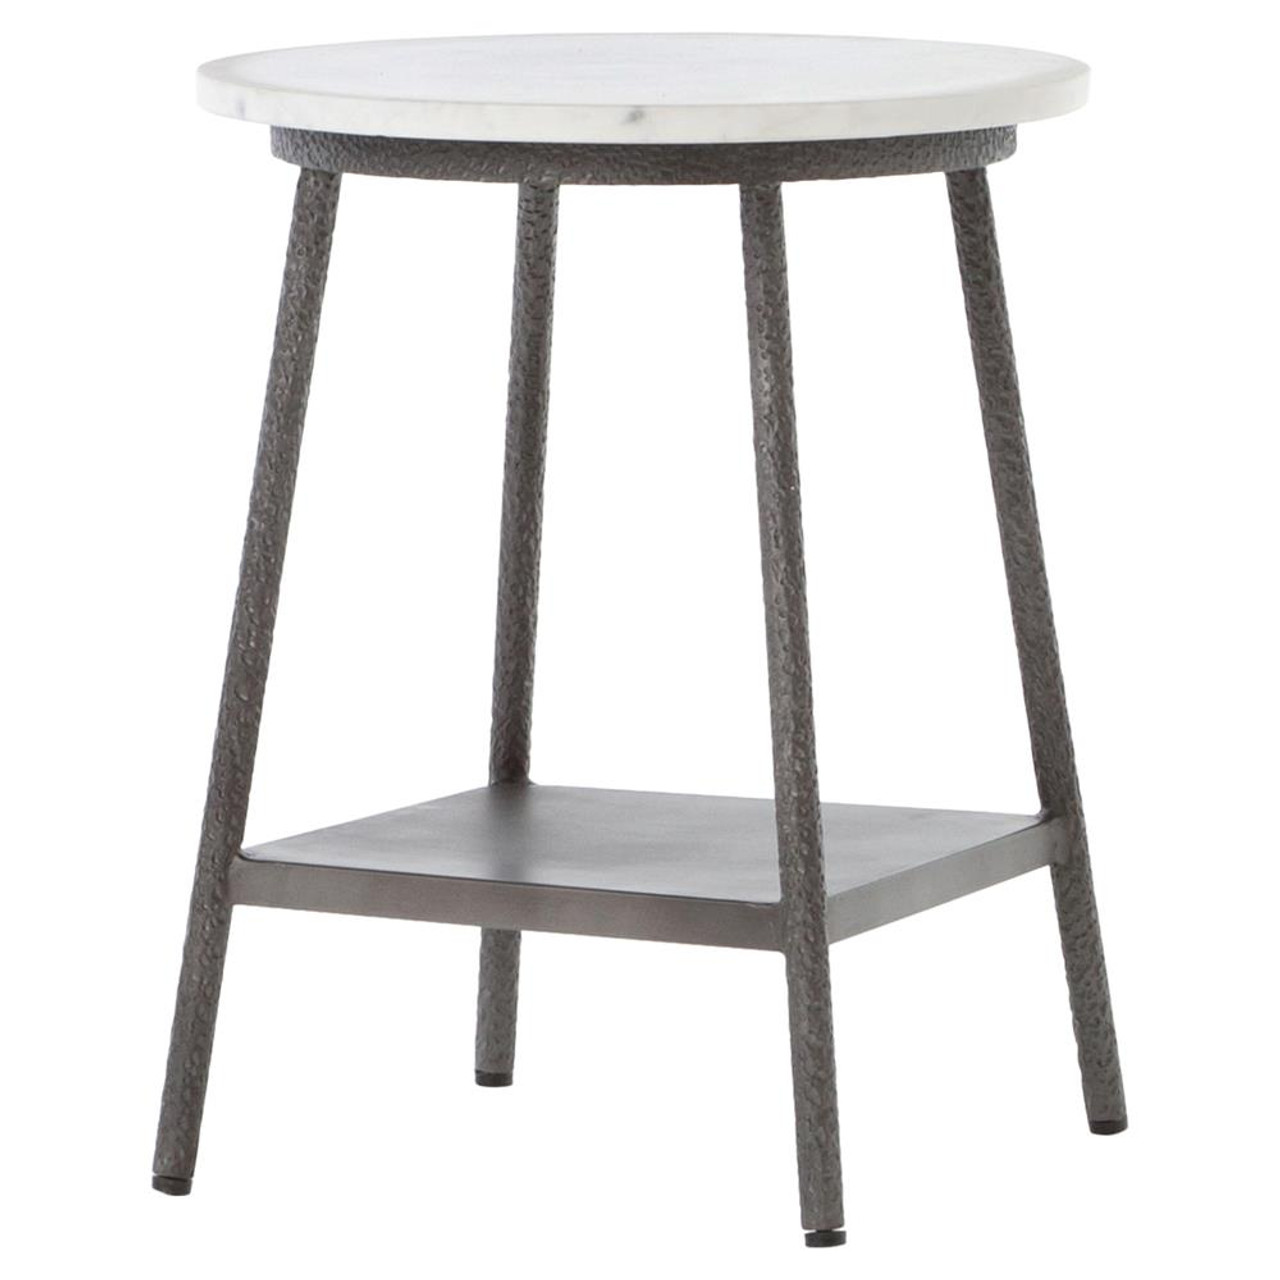 front shelf tab traditional viyet furniture three legged table with round side designer tables